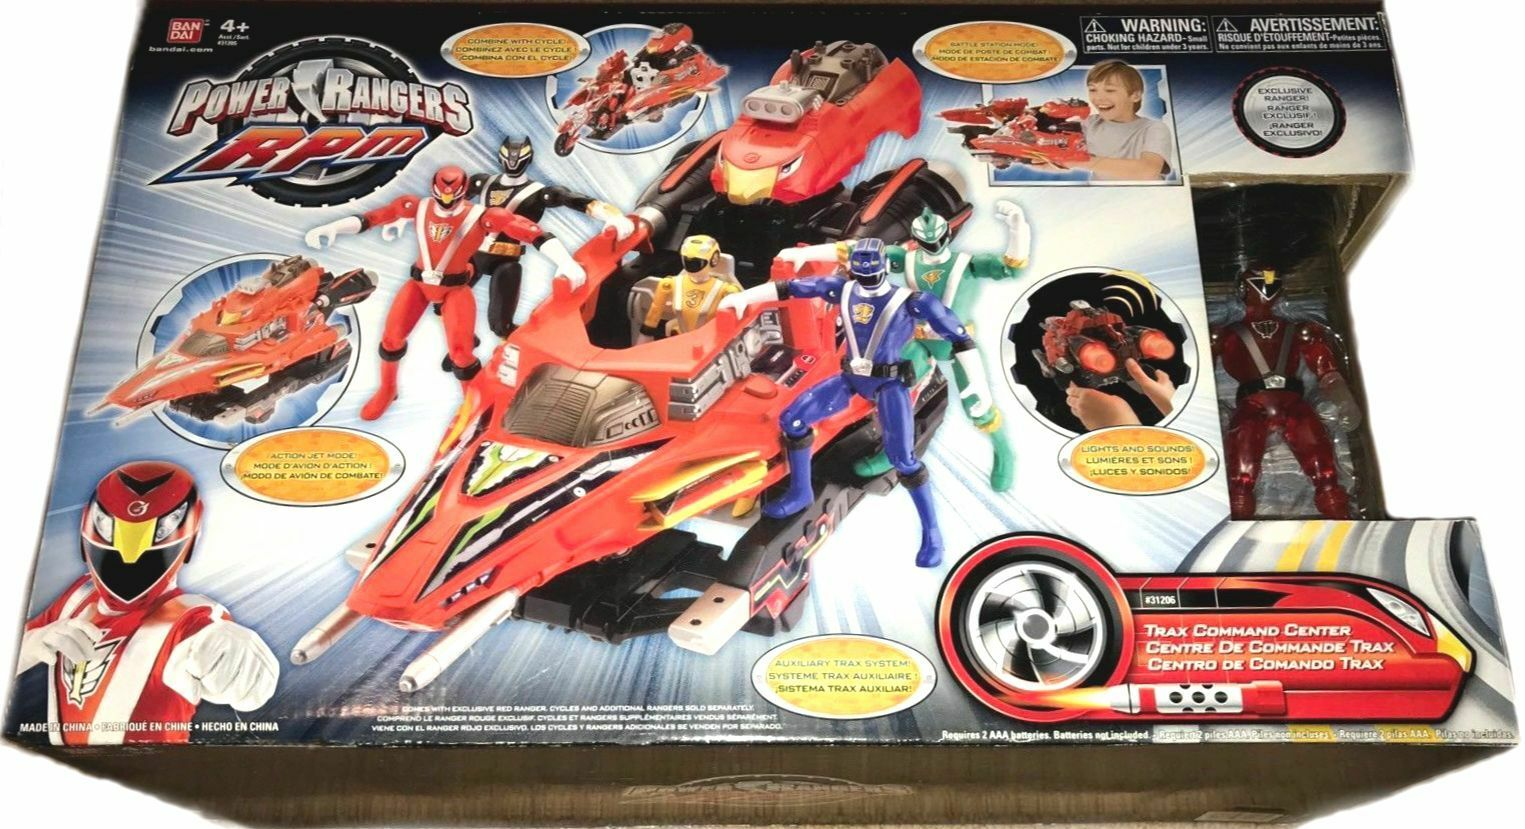 Power Rangers RPM Trax Command Center Factory Sealed 2009 W Exclusive ROT Ranger